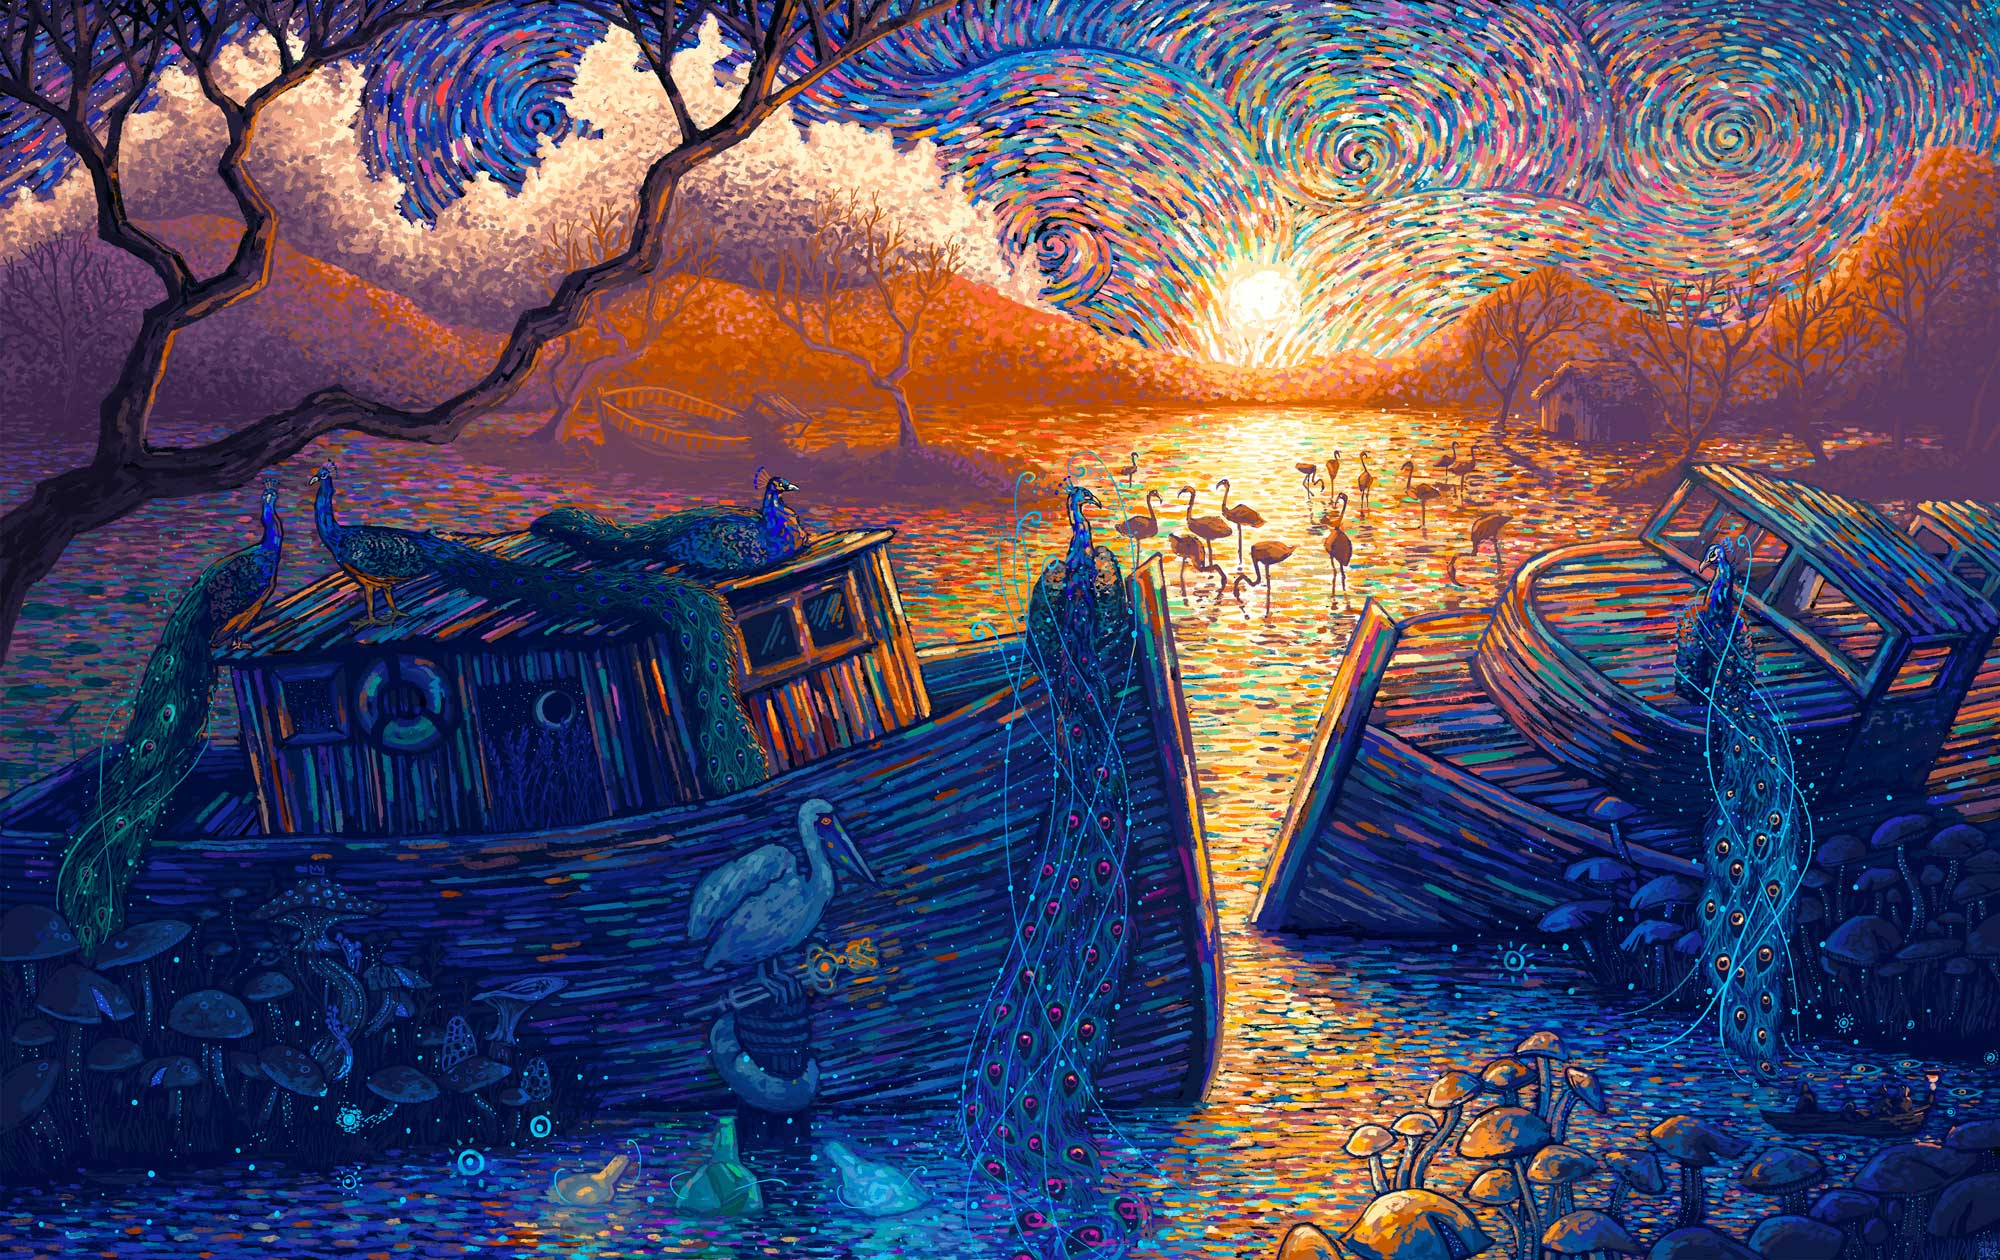 Malerei: James R. Eads James-R-Eads-paintings_04